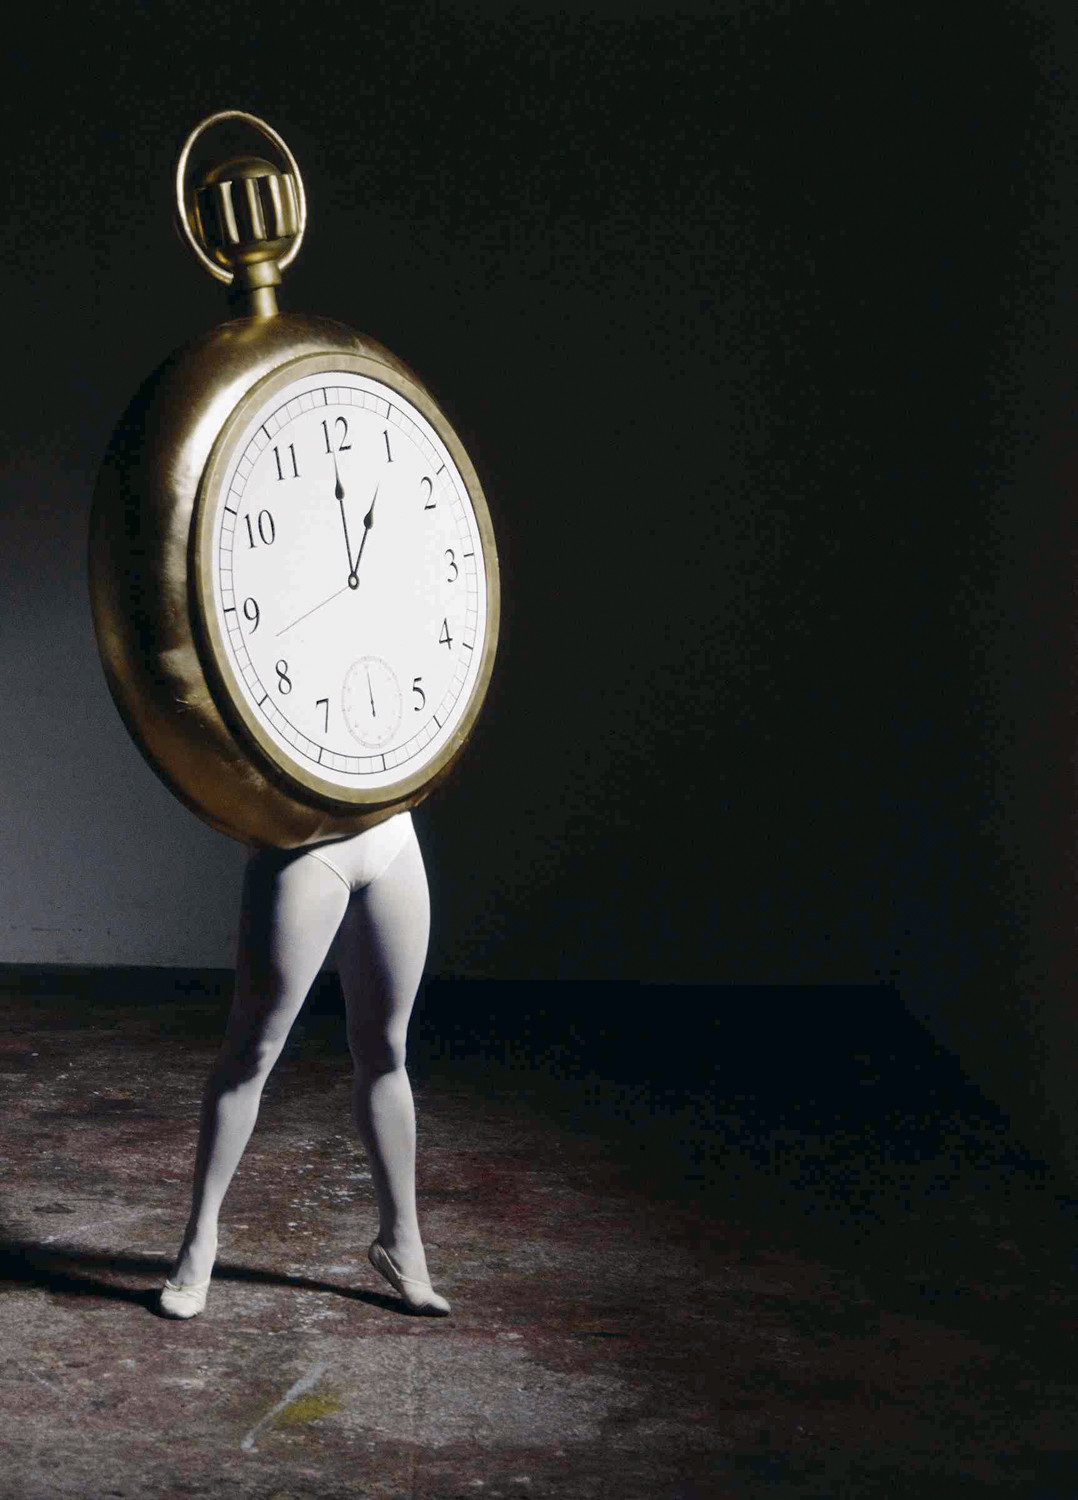 Laurie Simmons' 'Walking Pocket Watch II/The Music of Regret' shows the direct relationship between humans and time, an overall theme explored in 'Tick-Tock: Time in Contemporary Art' at the Lehman College Art Gallery.